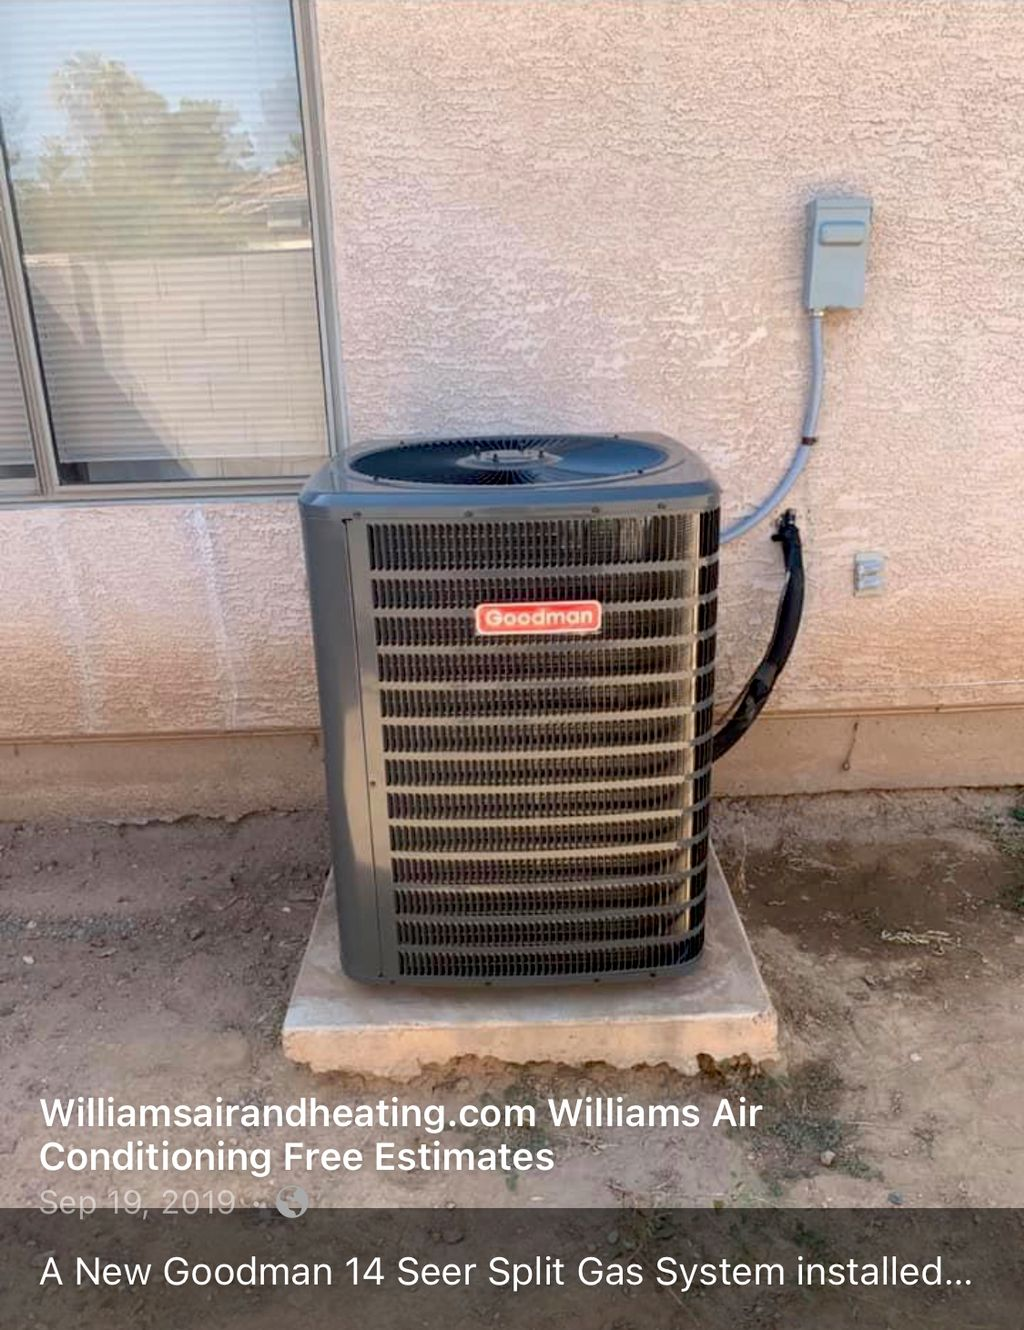 Duct cleaning special with Free AC Tuneup